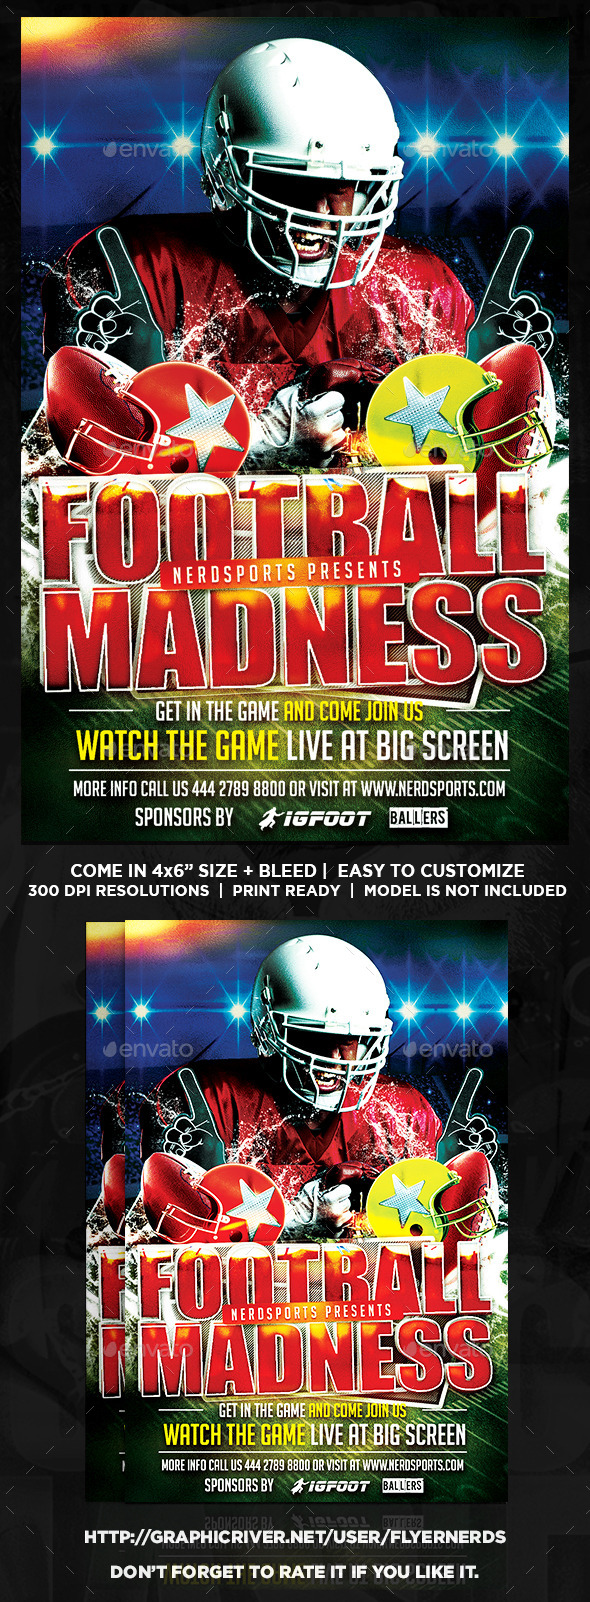 GraphicRiver Football Madness 2K15 Sports Flyer 10133059